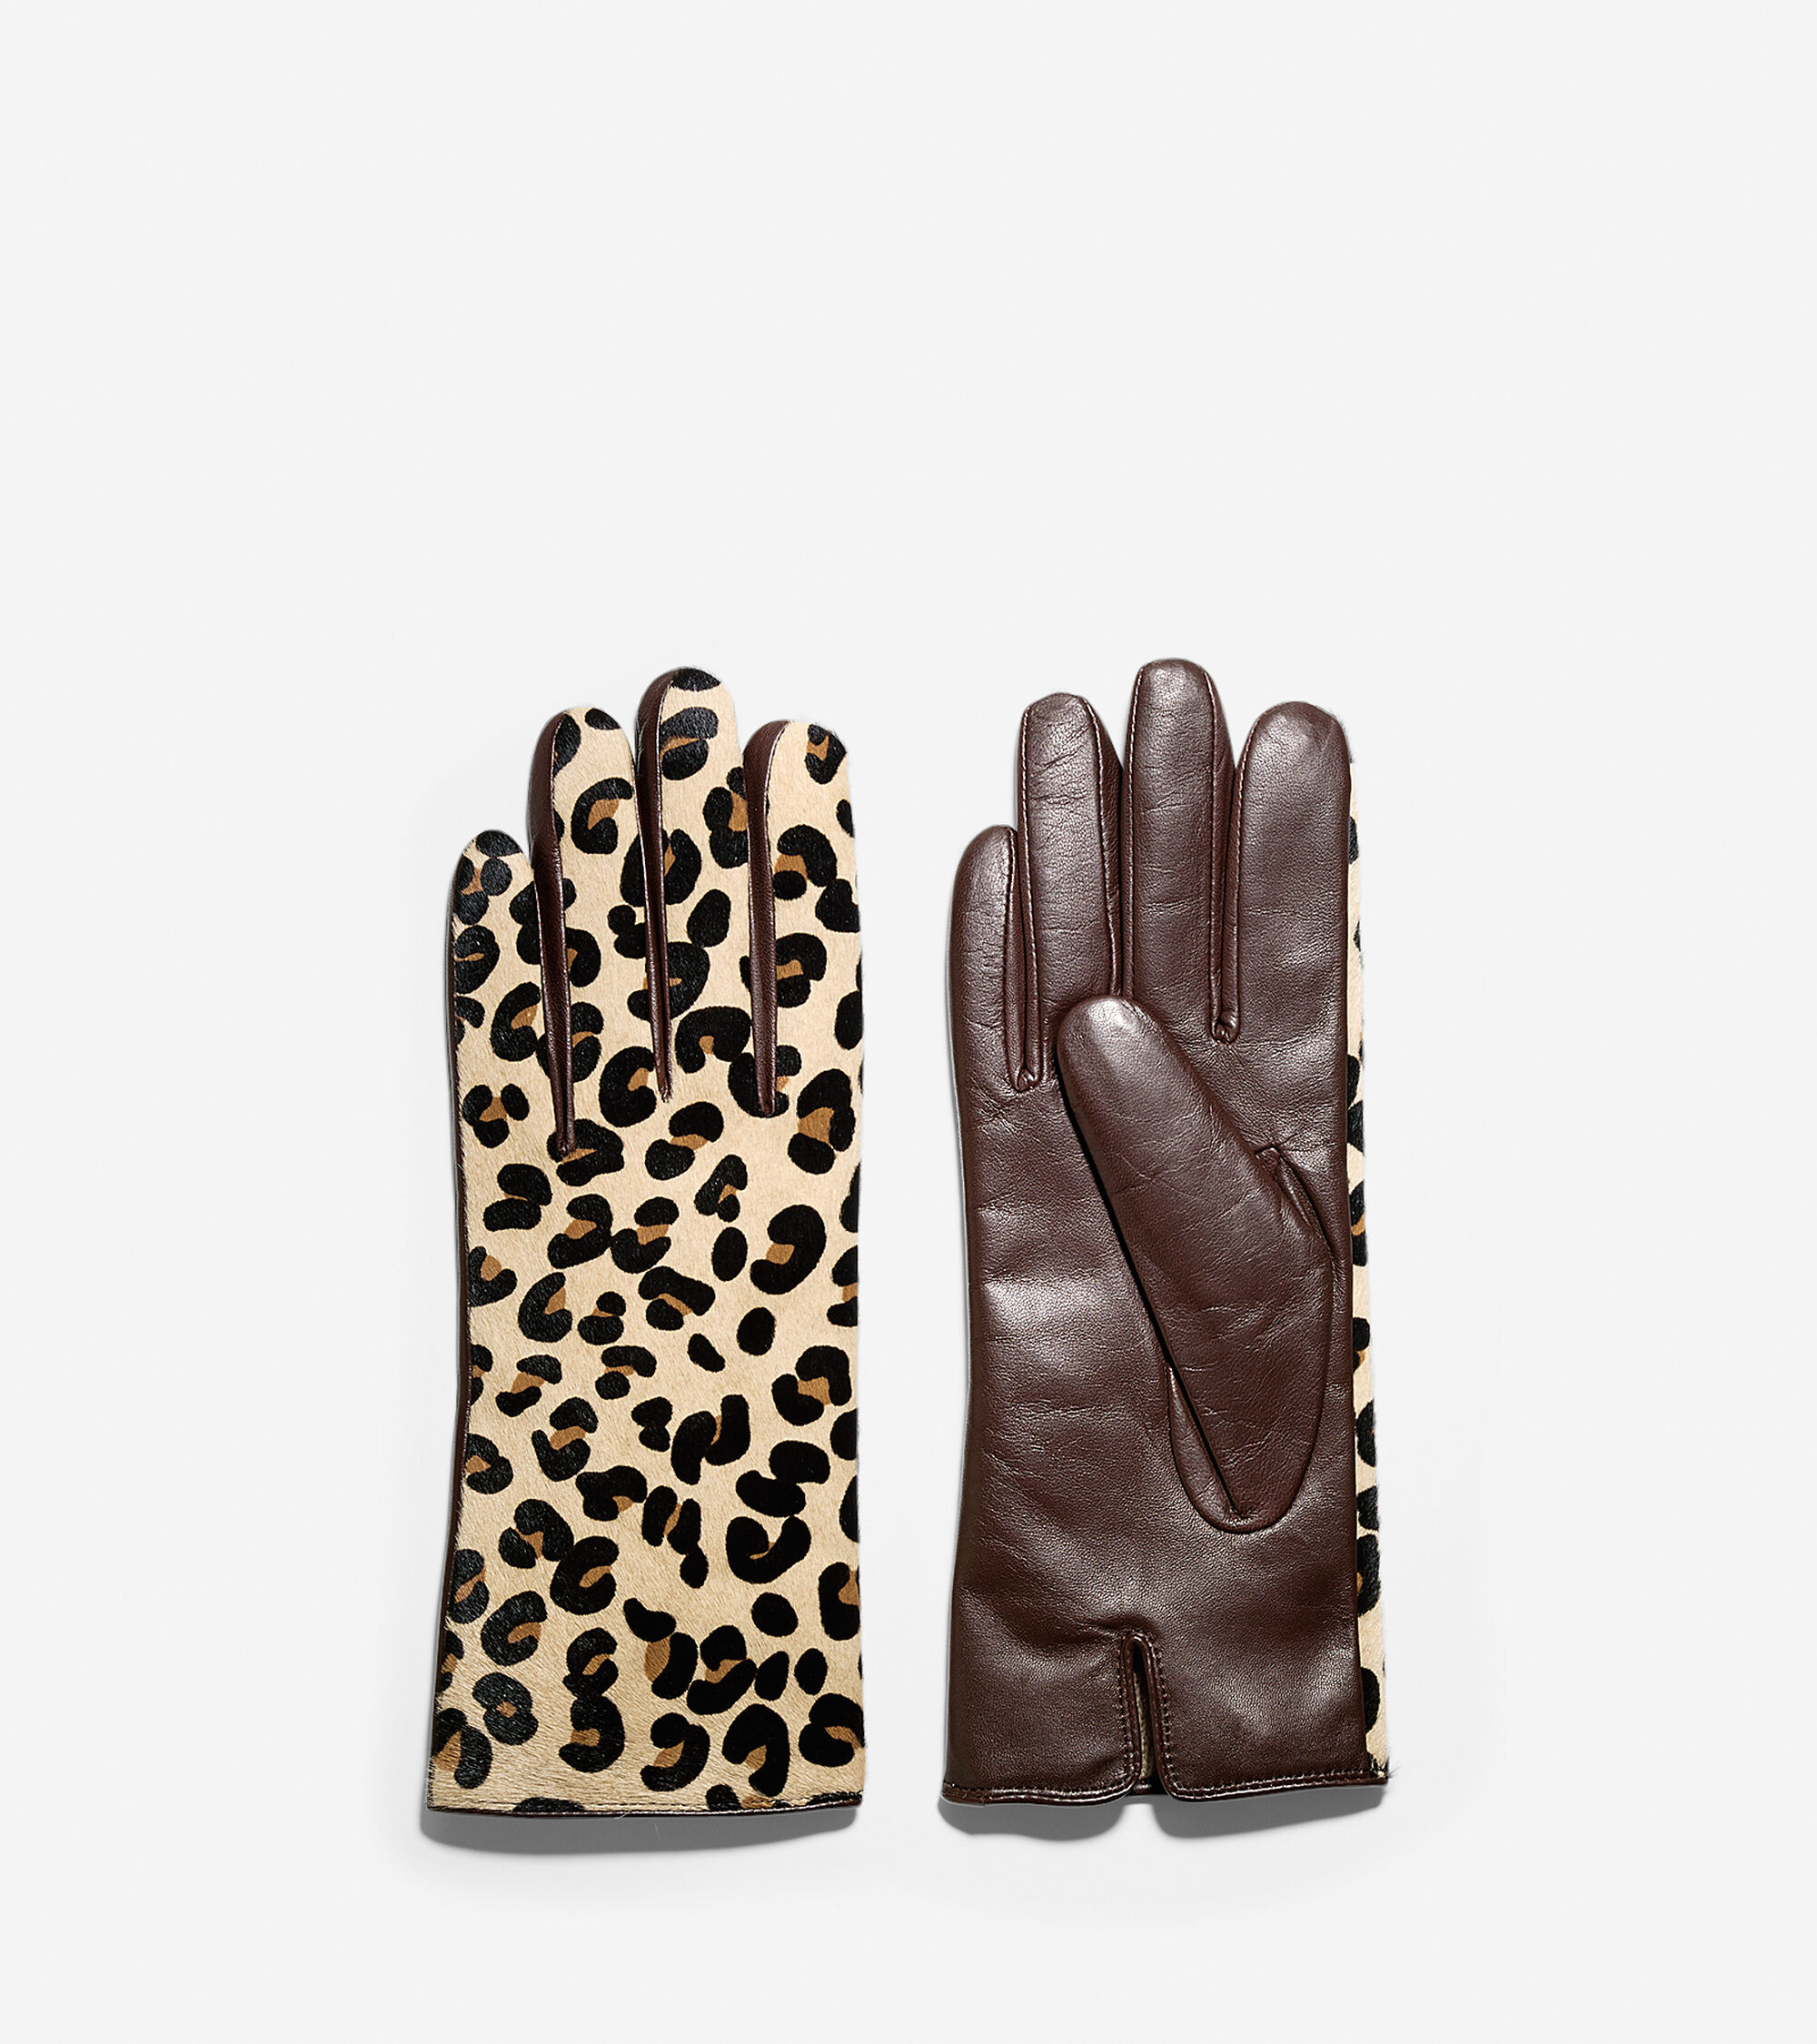 Cole haan black leather gloves - Haircalf Leather Glove Haircalf Leather Glove Colehaan